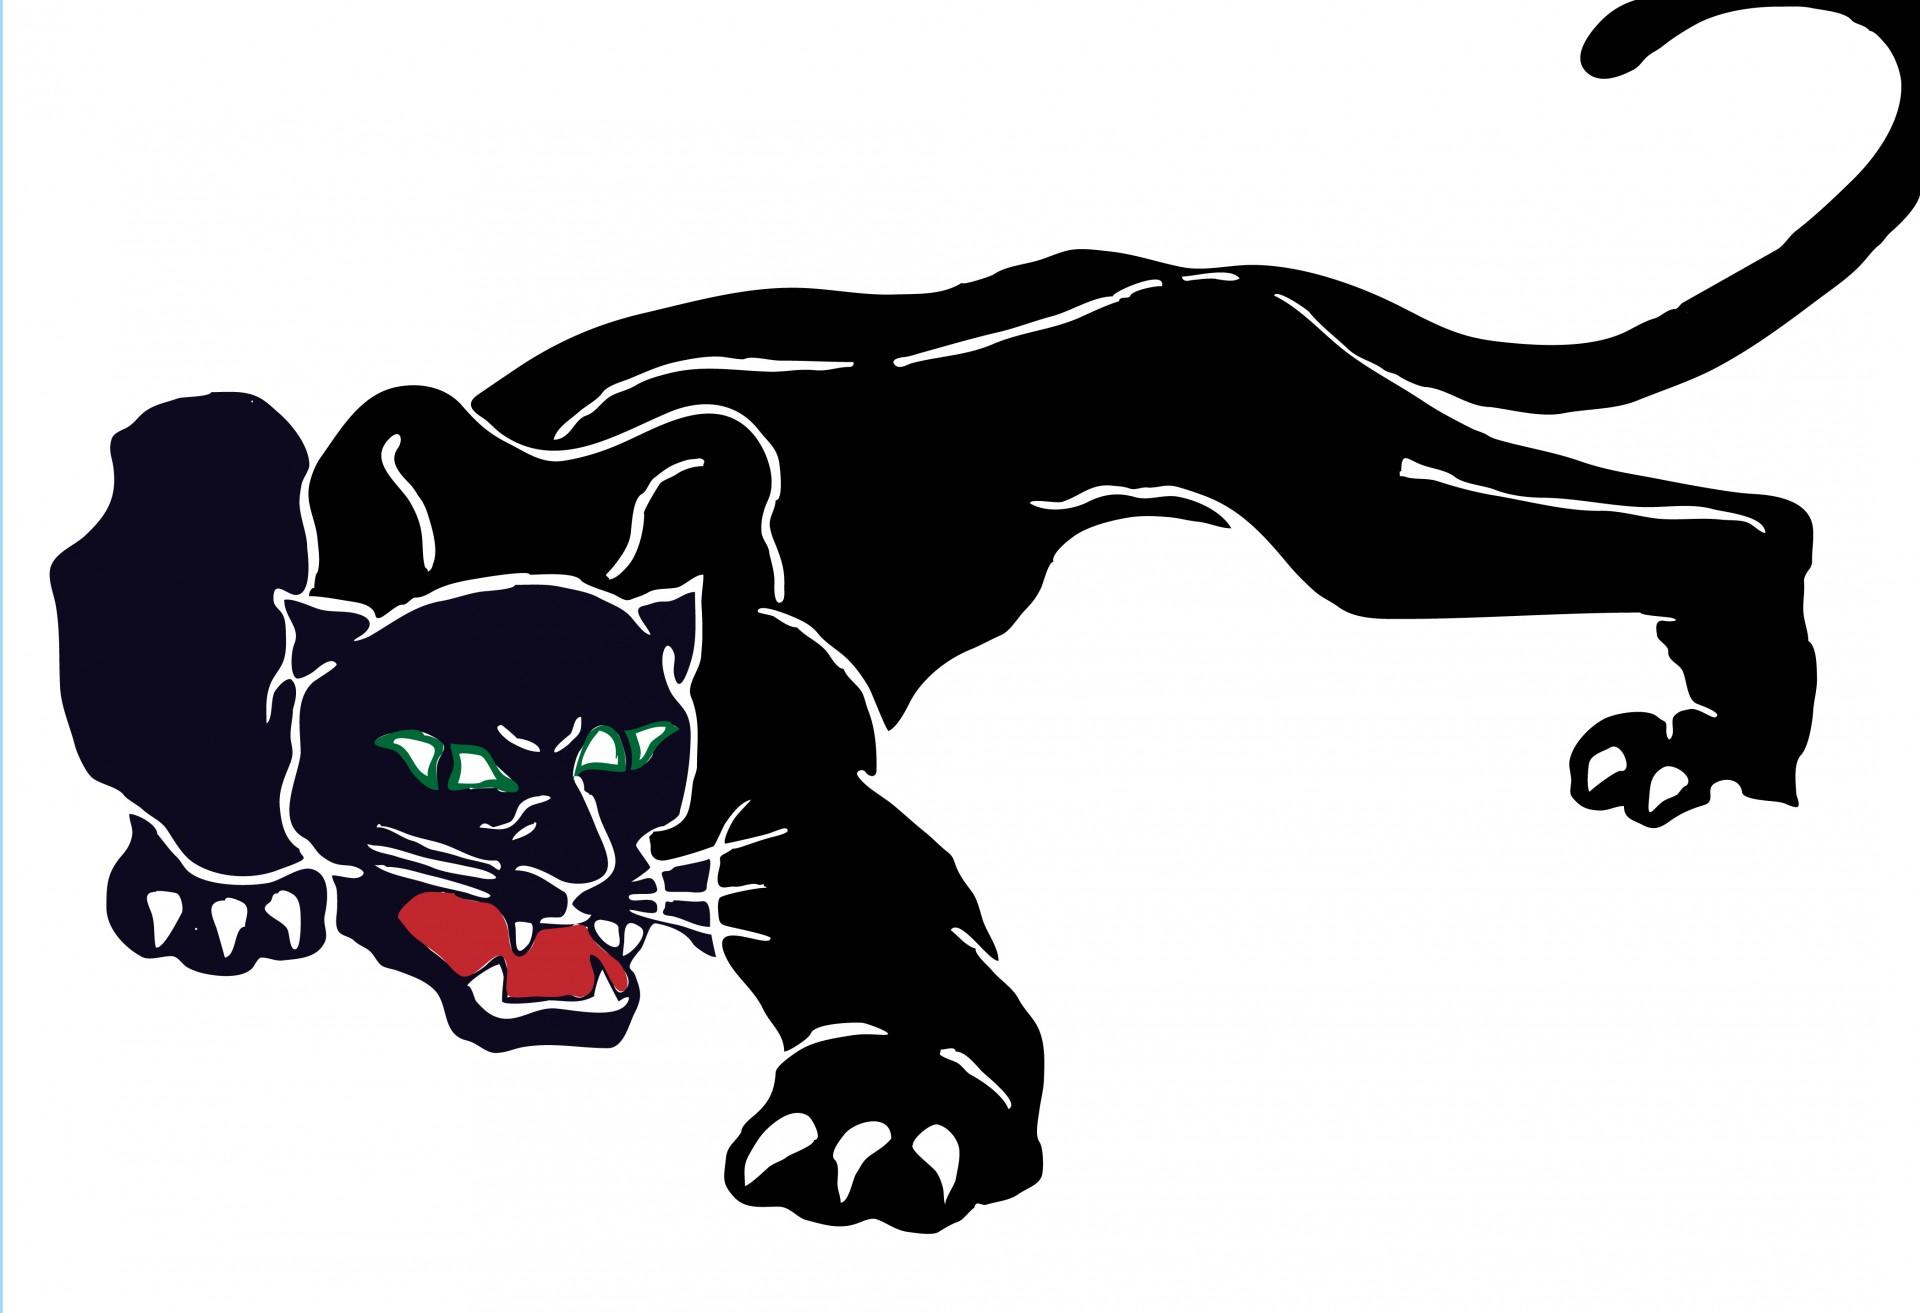 Black Panther clipart Panther Domain Panther Pictures Public